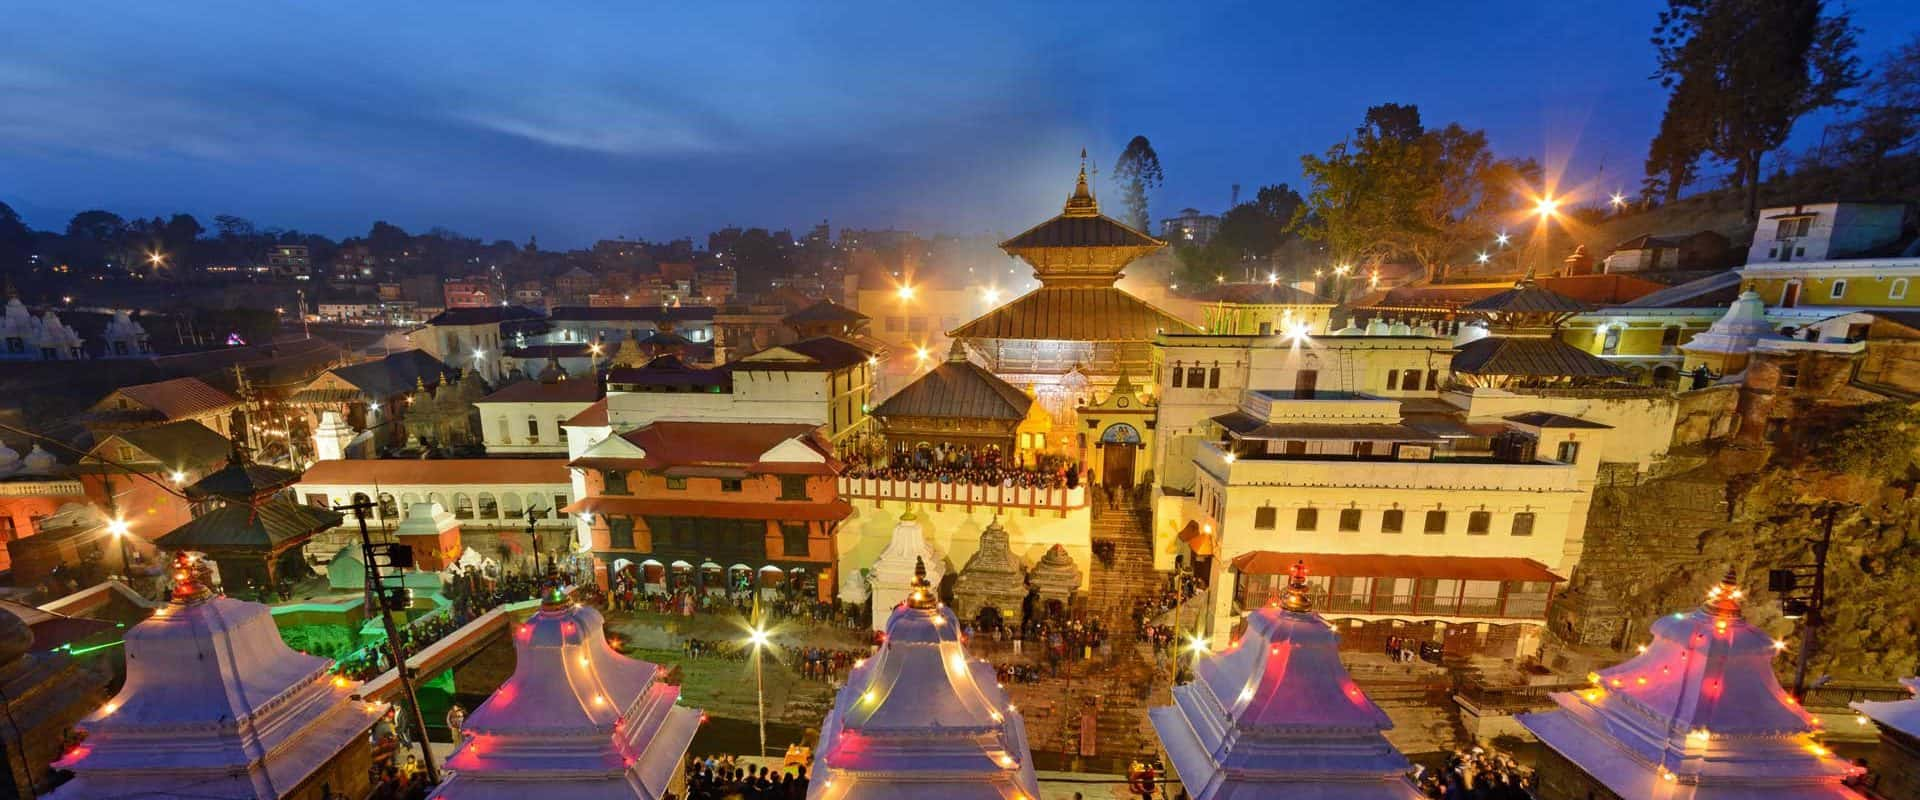 KATHMANDU - eclectic mix of past and present